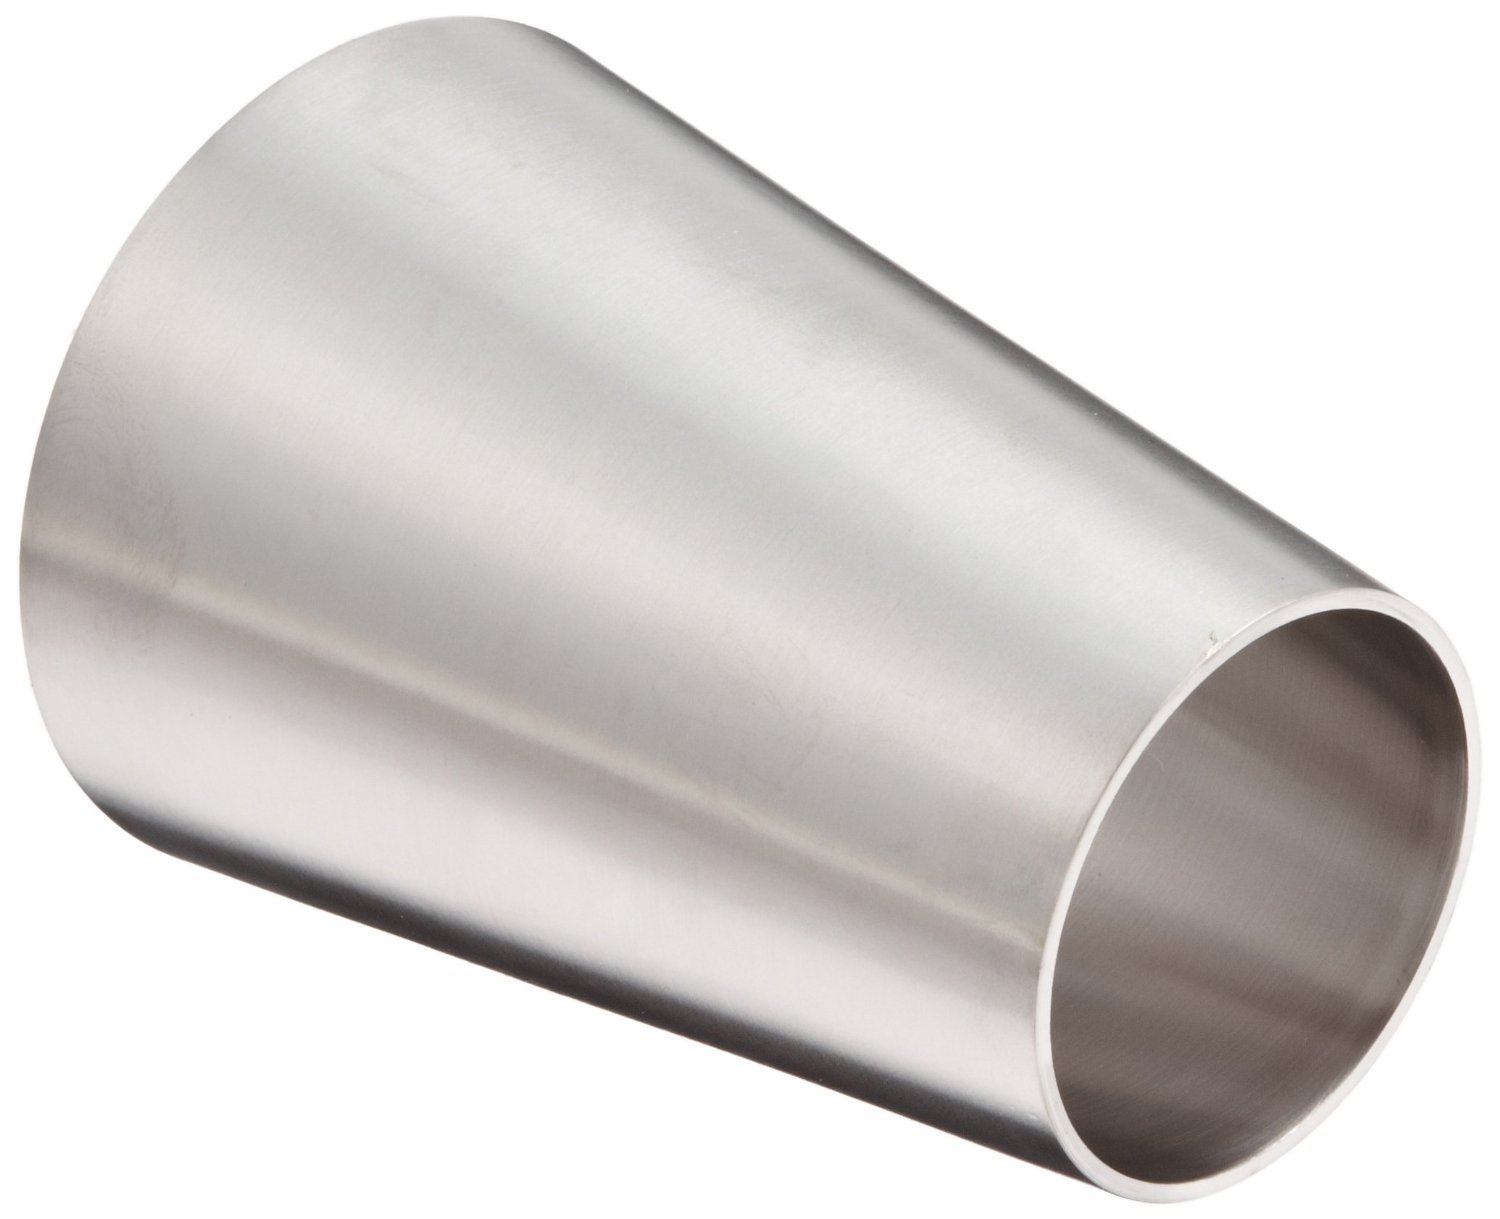 DixonB31W-G300200P Stainless Steel 304 Polished Fitting, Weld Concentric Reducer, 3'' Tube OD x 2'' Tube OD